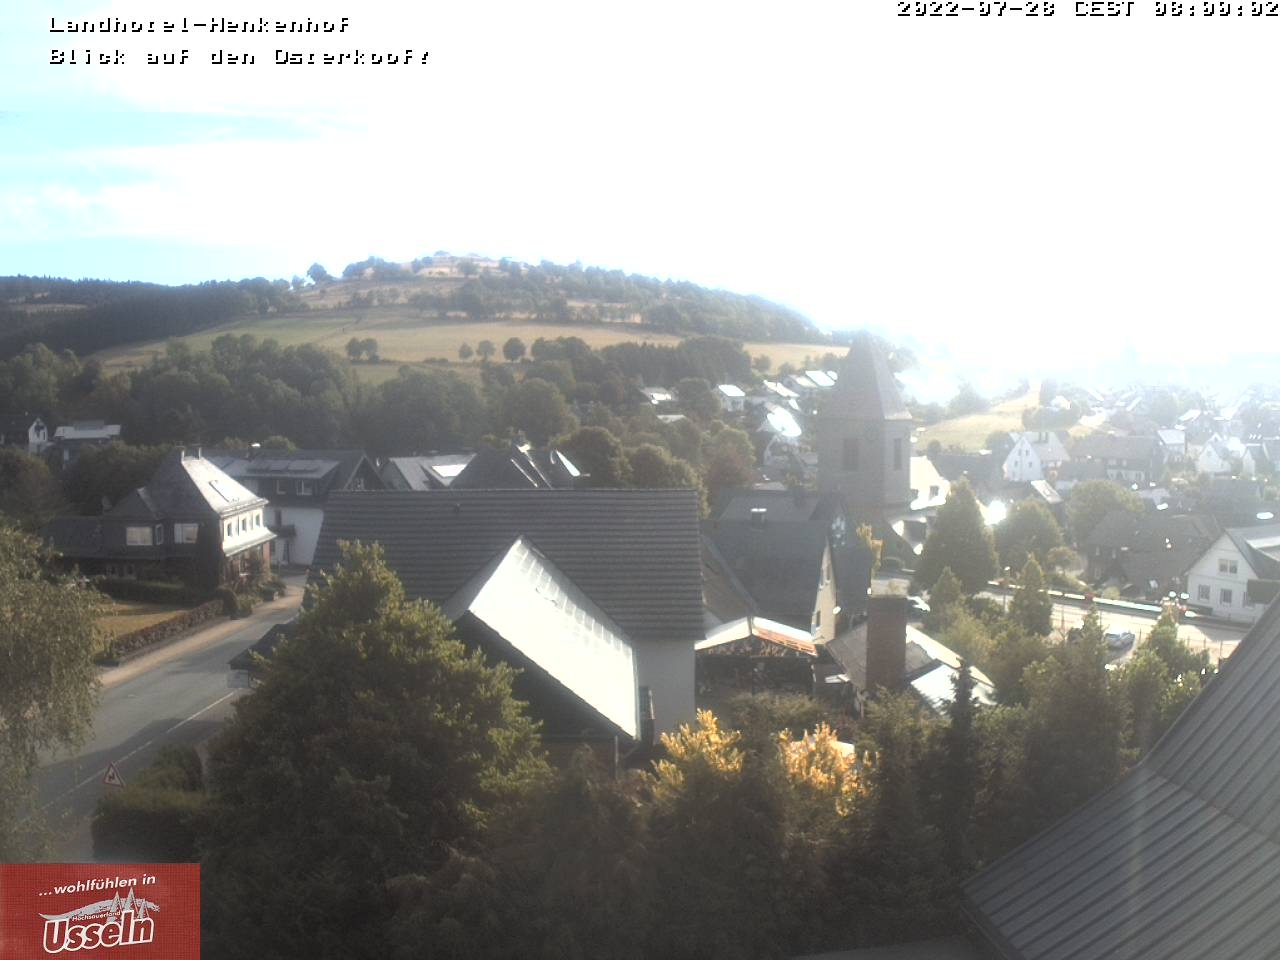 Willingen-Usseln - Webcam 1